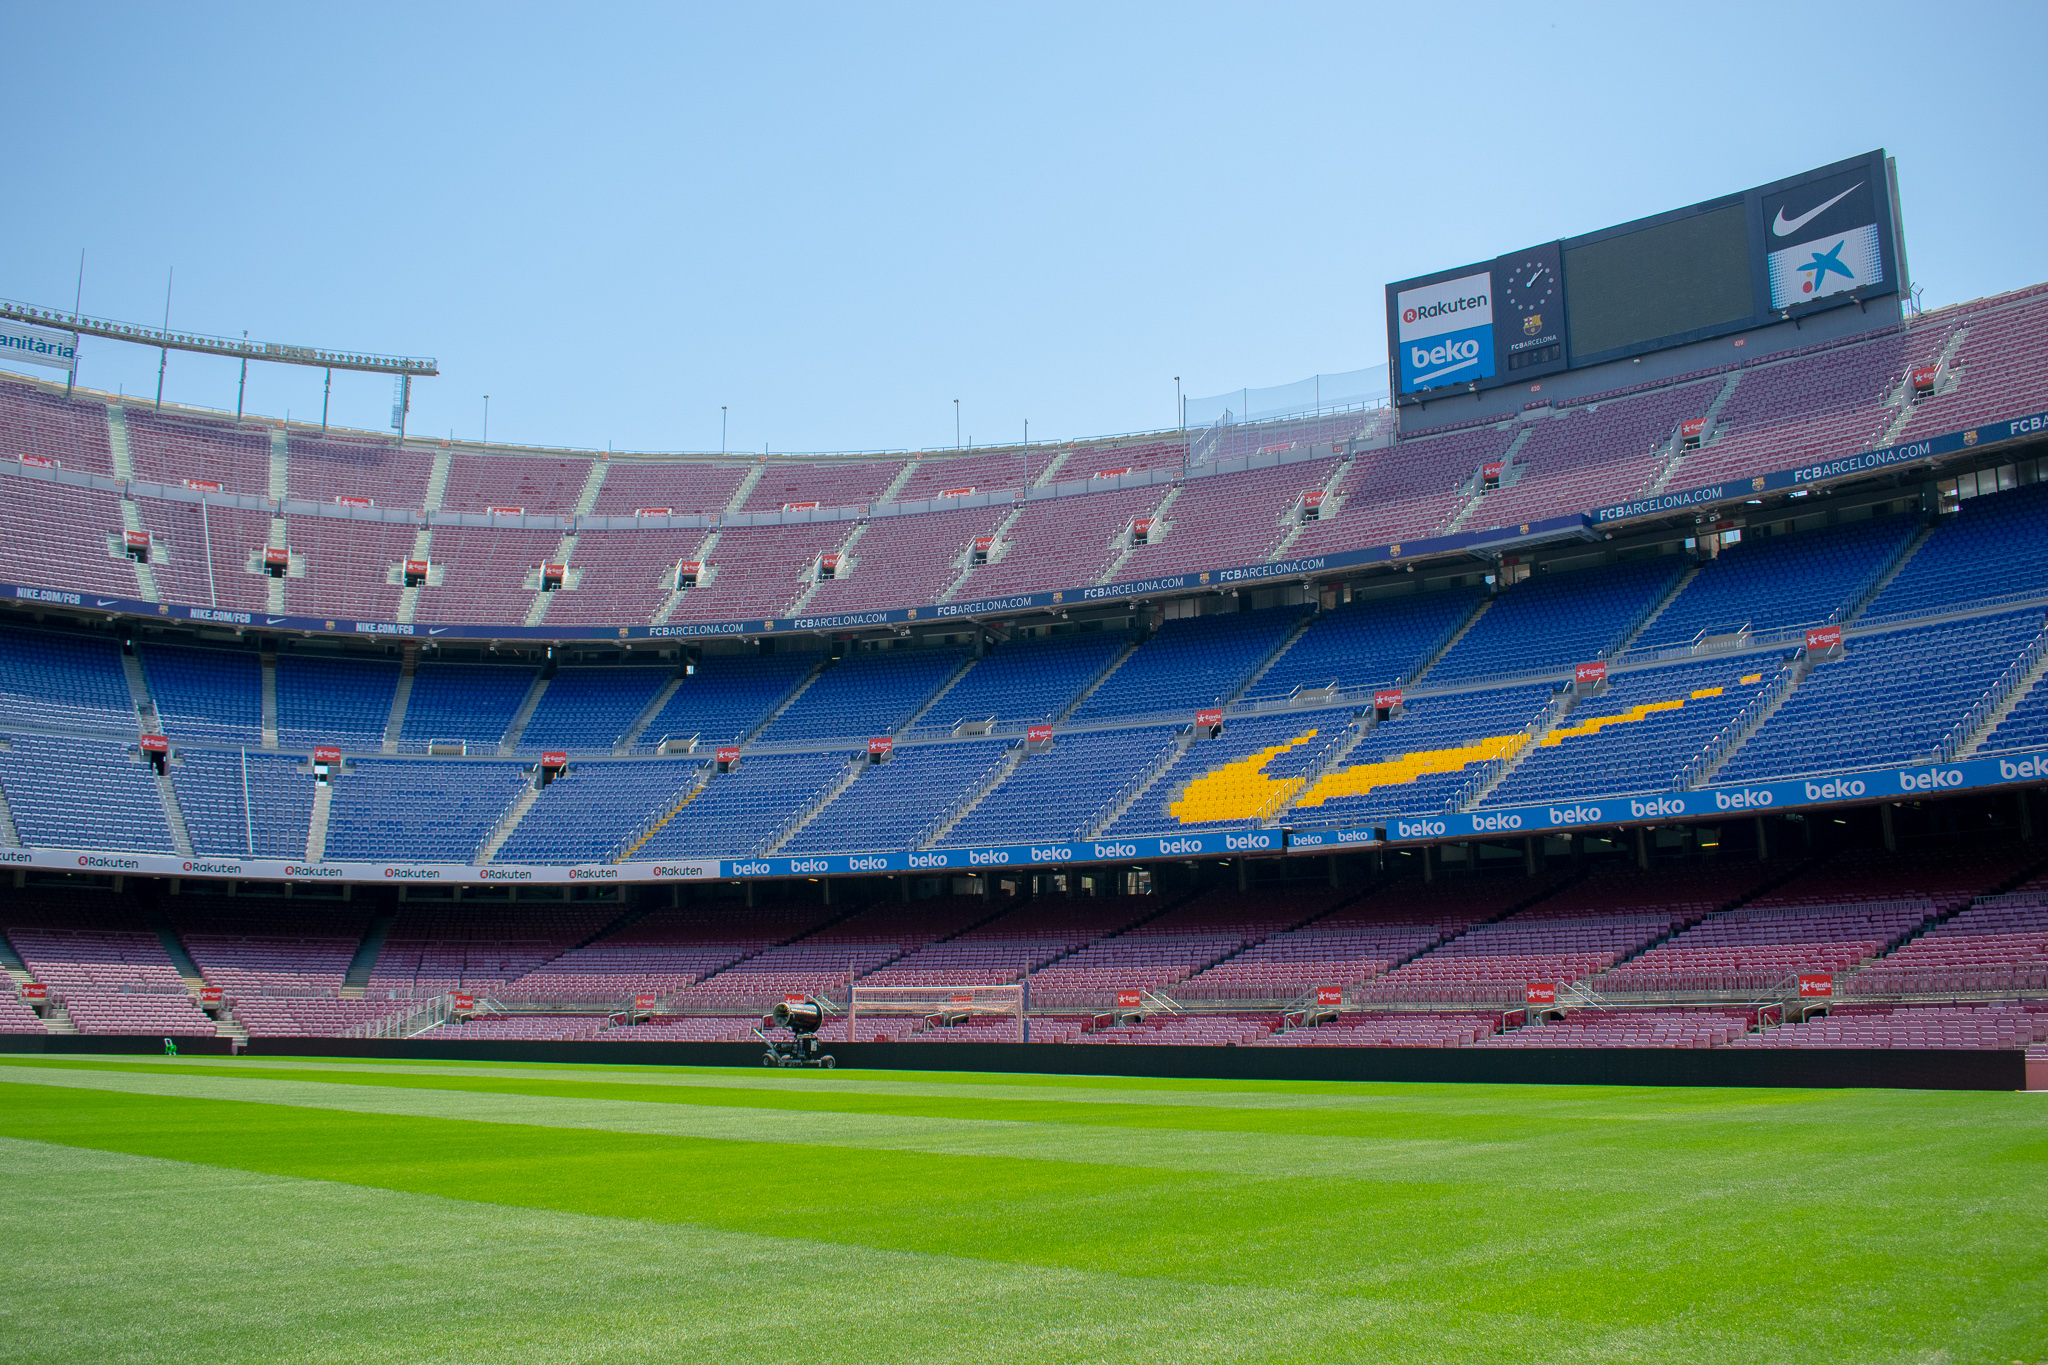 In addition to the museum, you can go into the stands and see the pitch at the Camp Nou Experience.